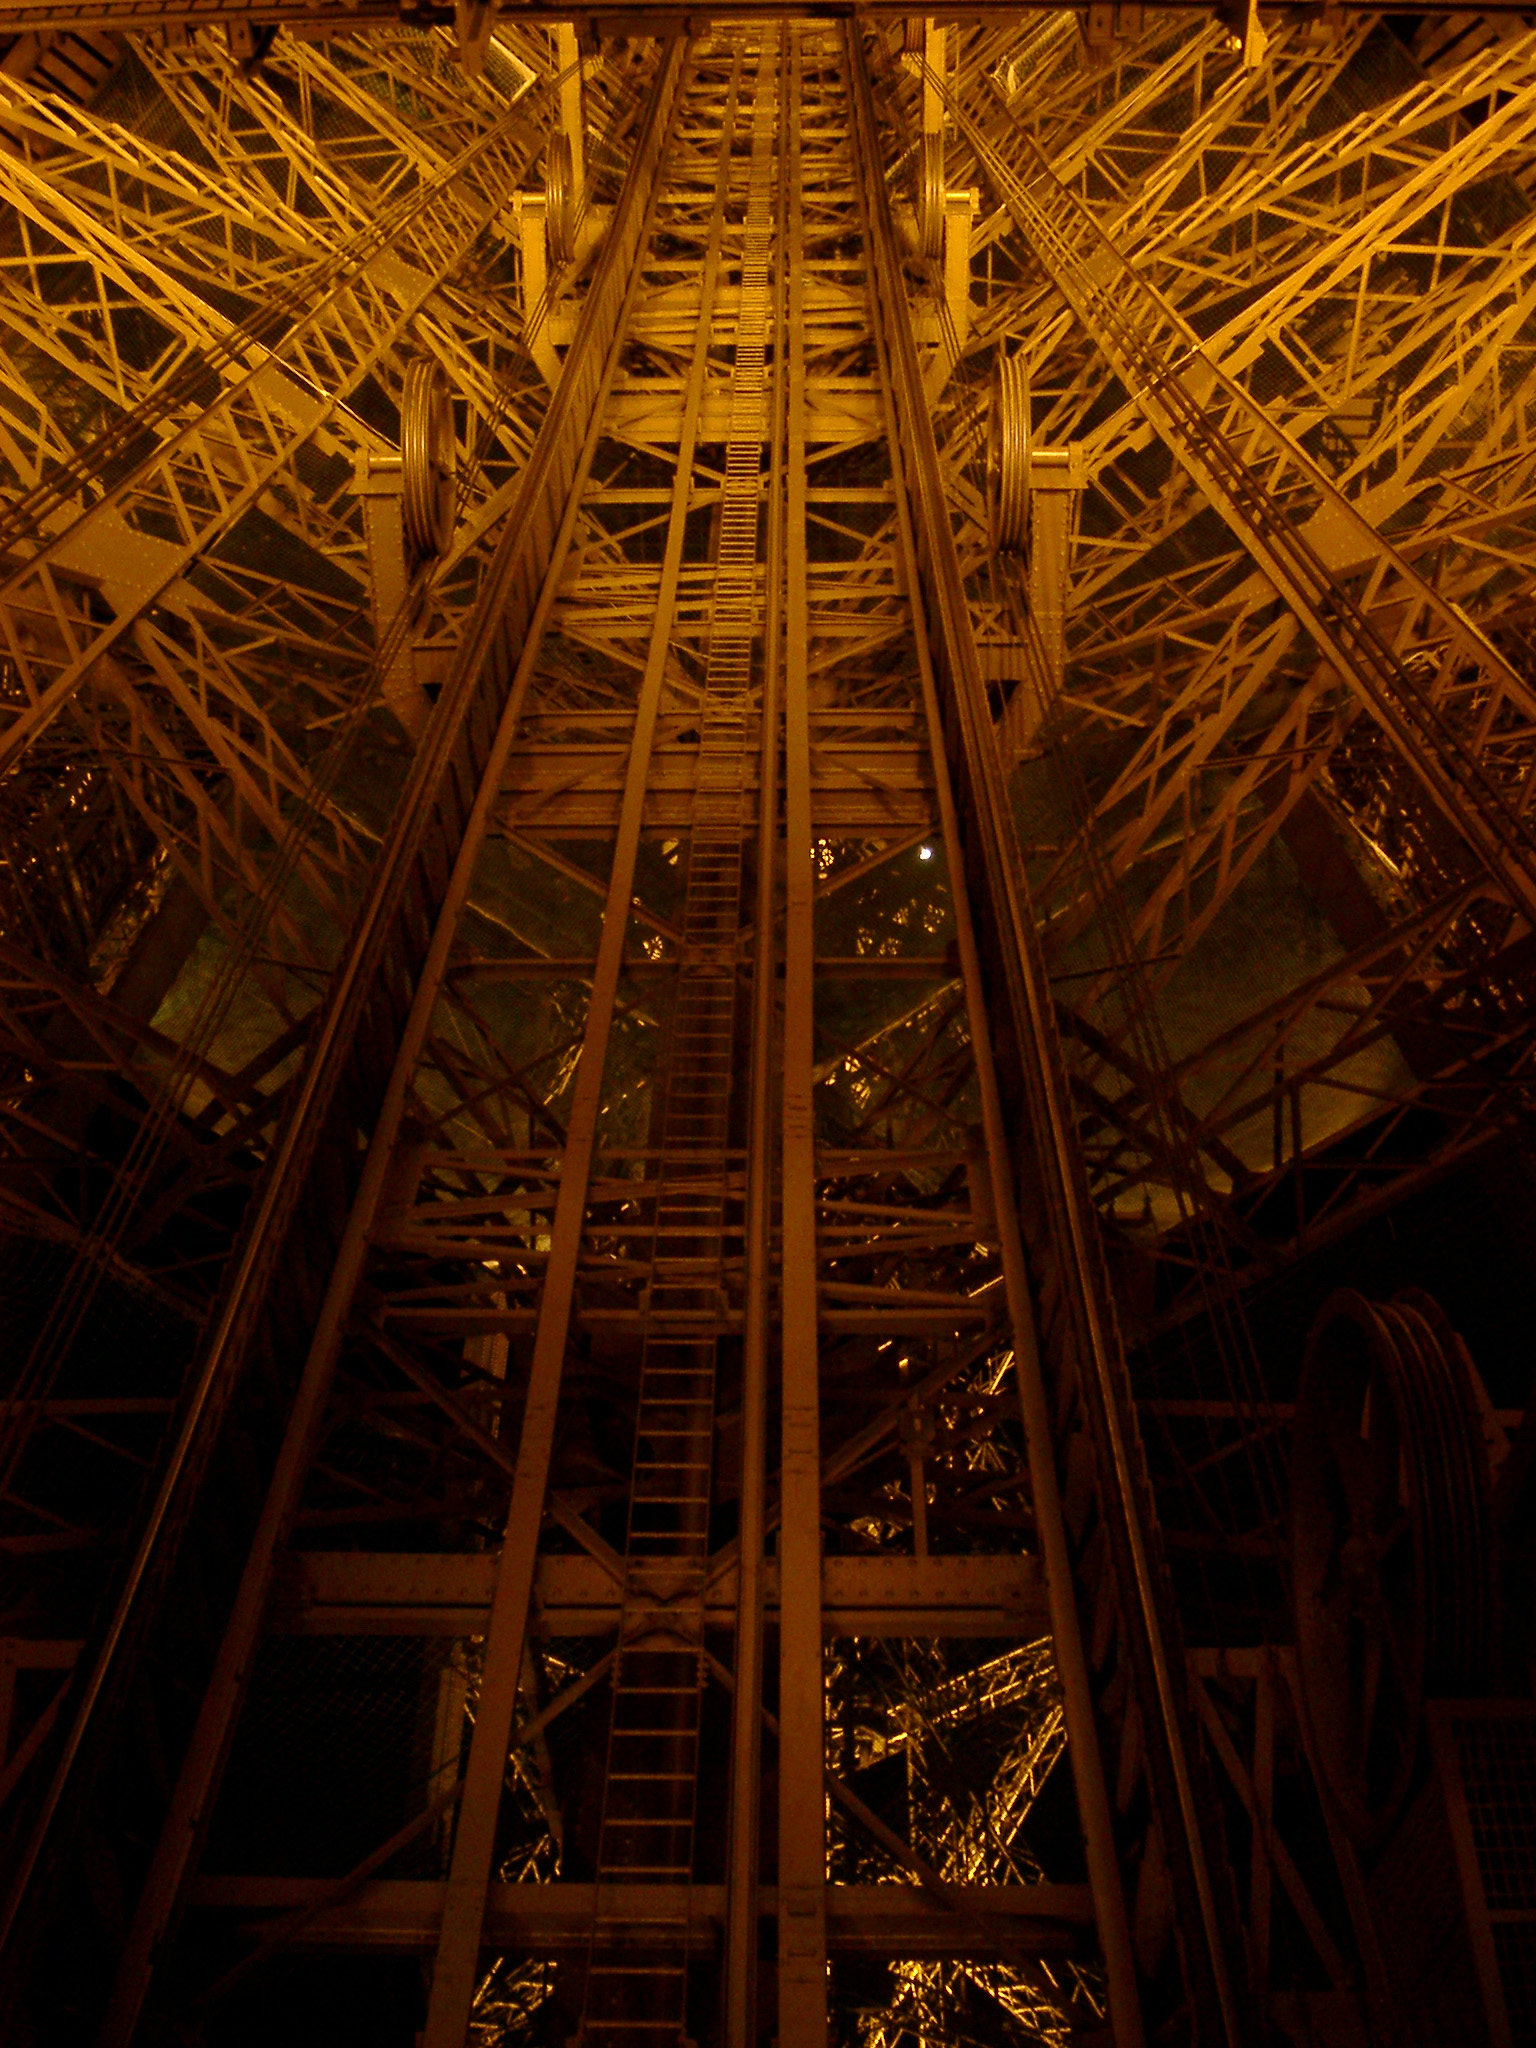 Famous Eiffel Tower Sculpture in Worms Eye View. The Most- Visited Paid Monument of the World. Captured at Night Time.